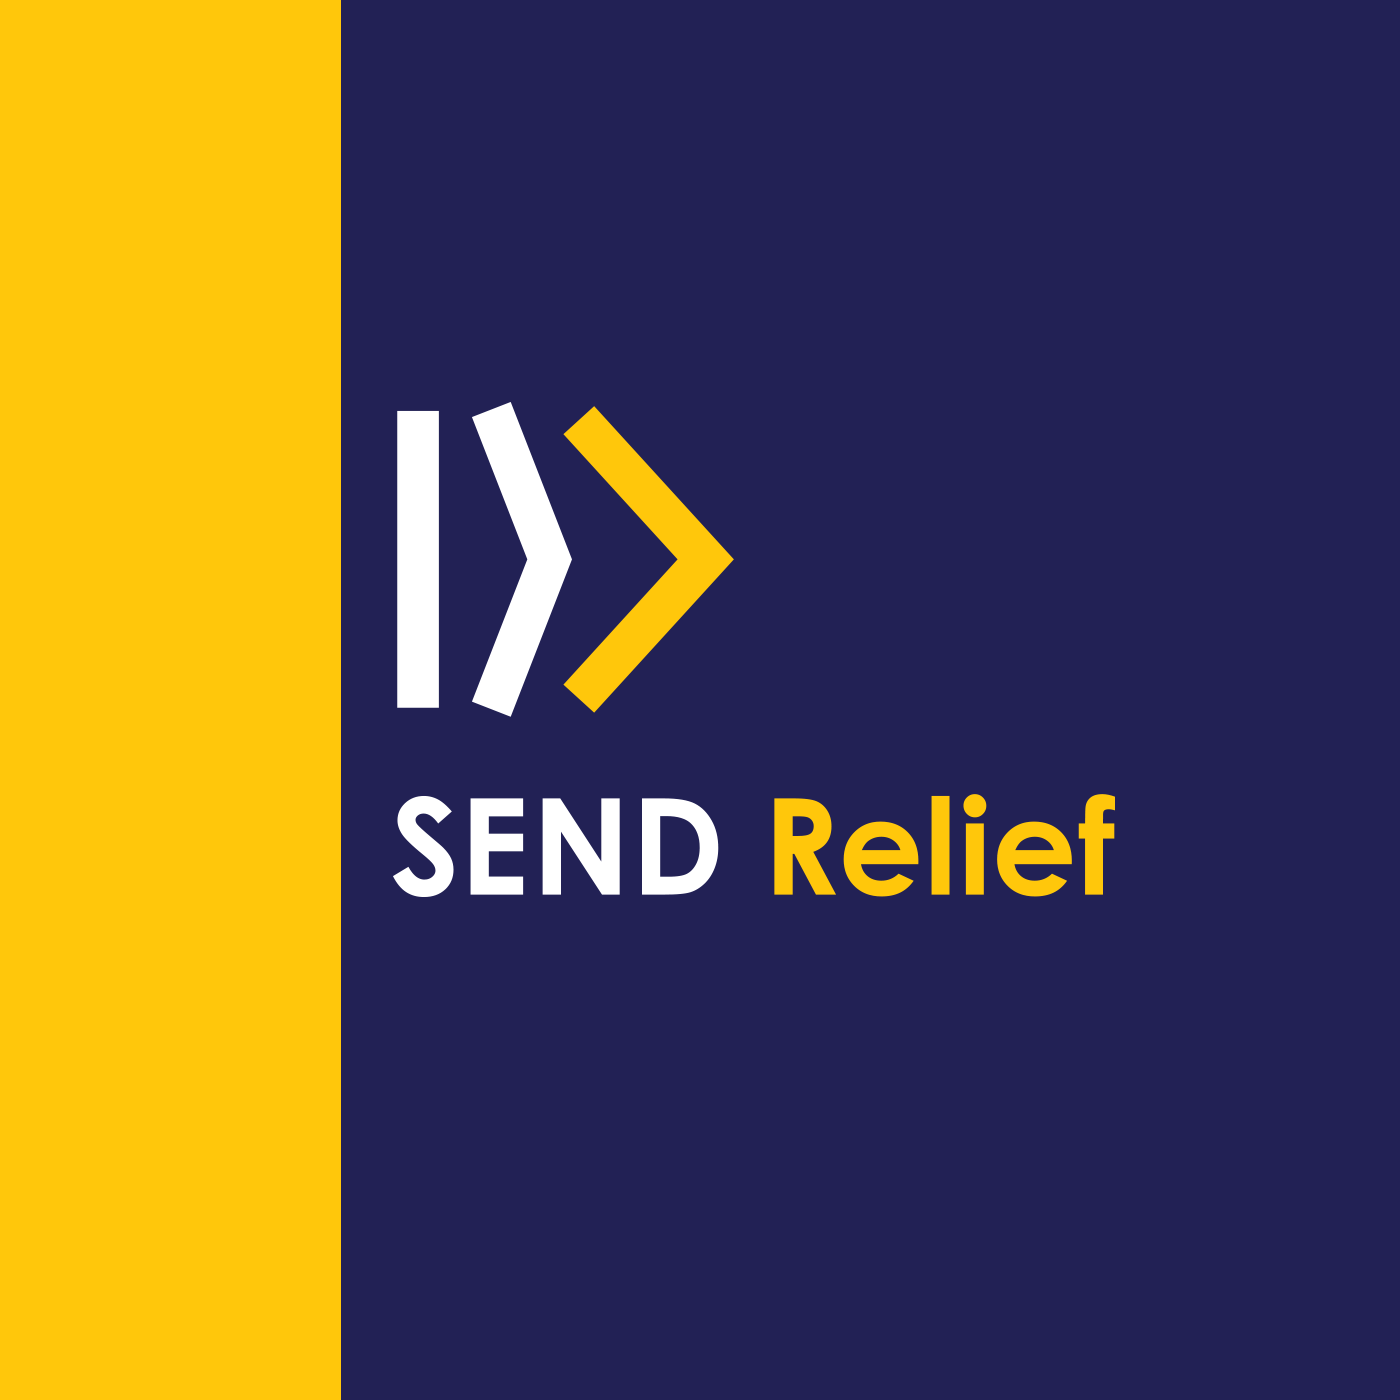 send_relief_1400x1400.png